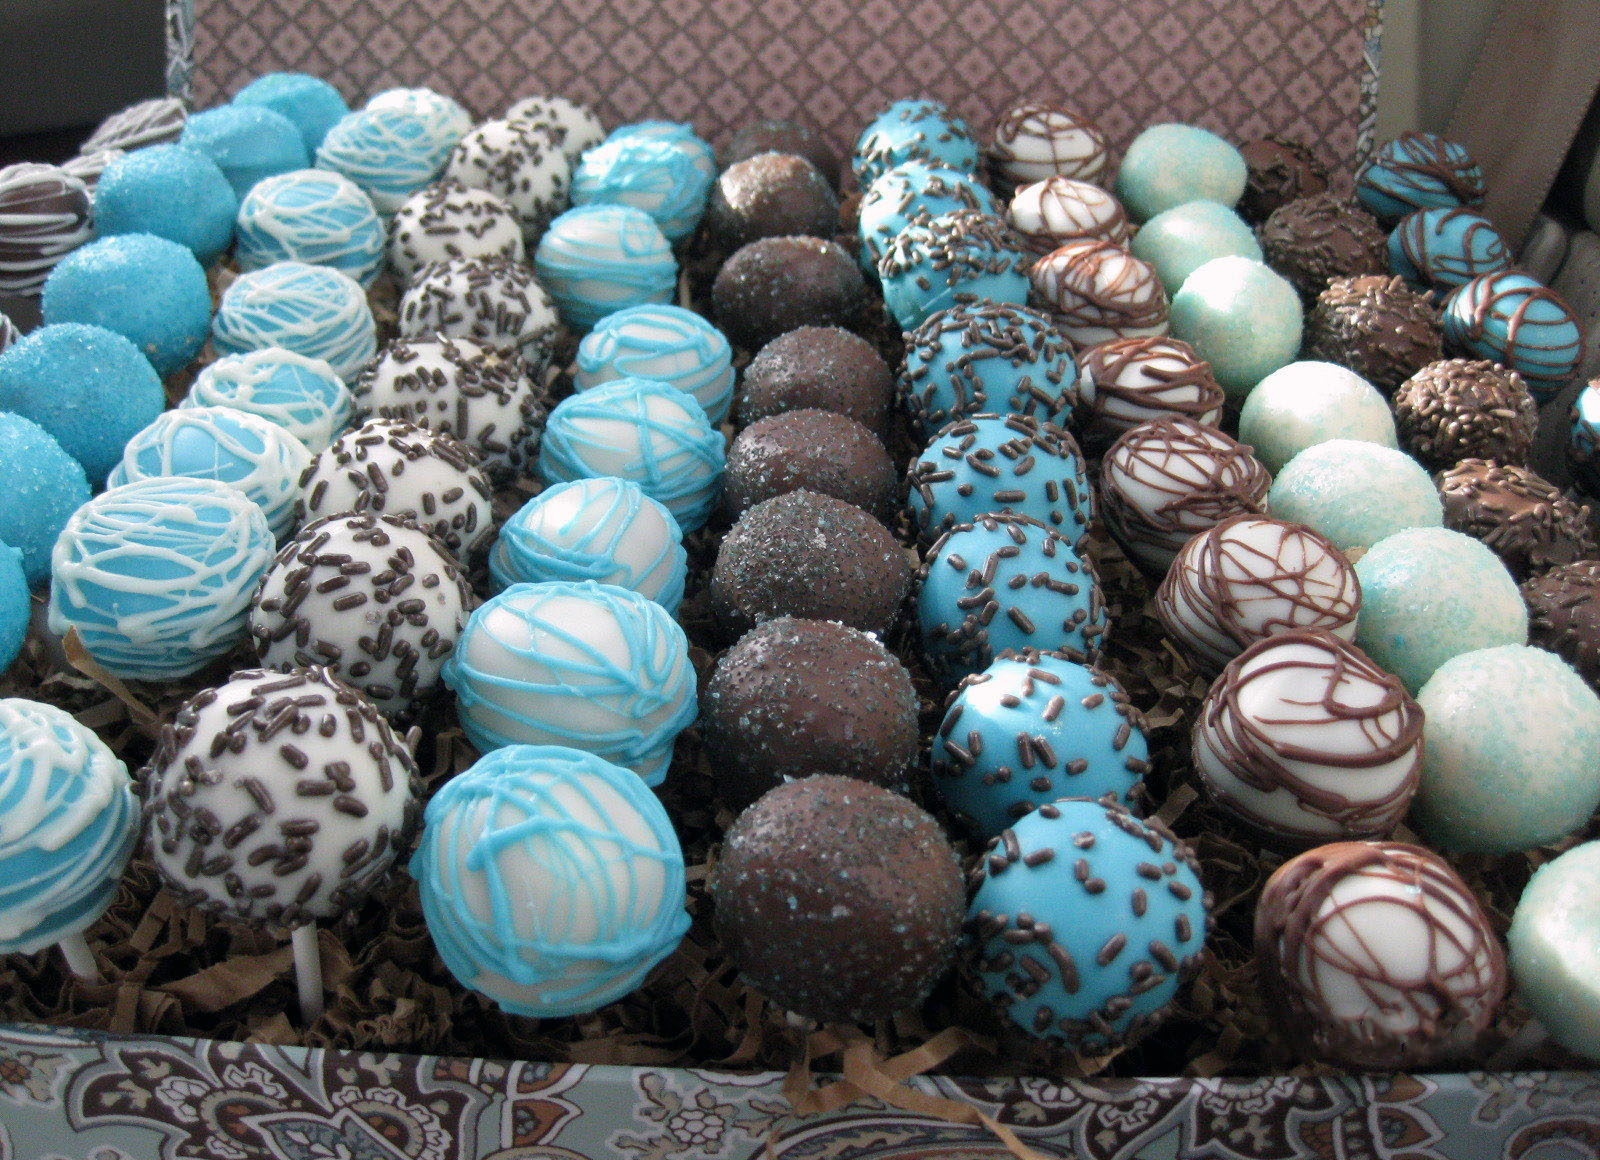 rows of decorated cake pops displayed in a box: combinations of chocolate, white chocolate, blue tinted frosting, and sprinkles